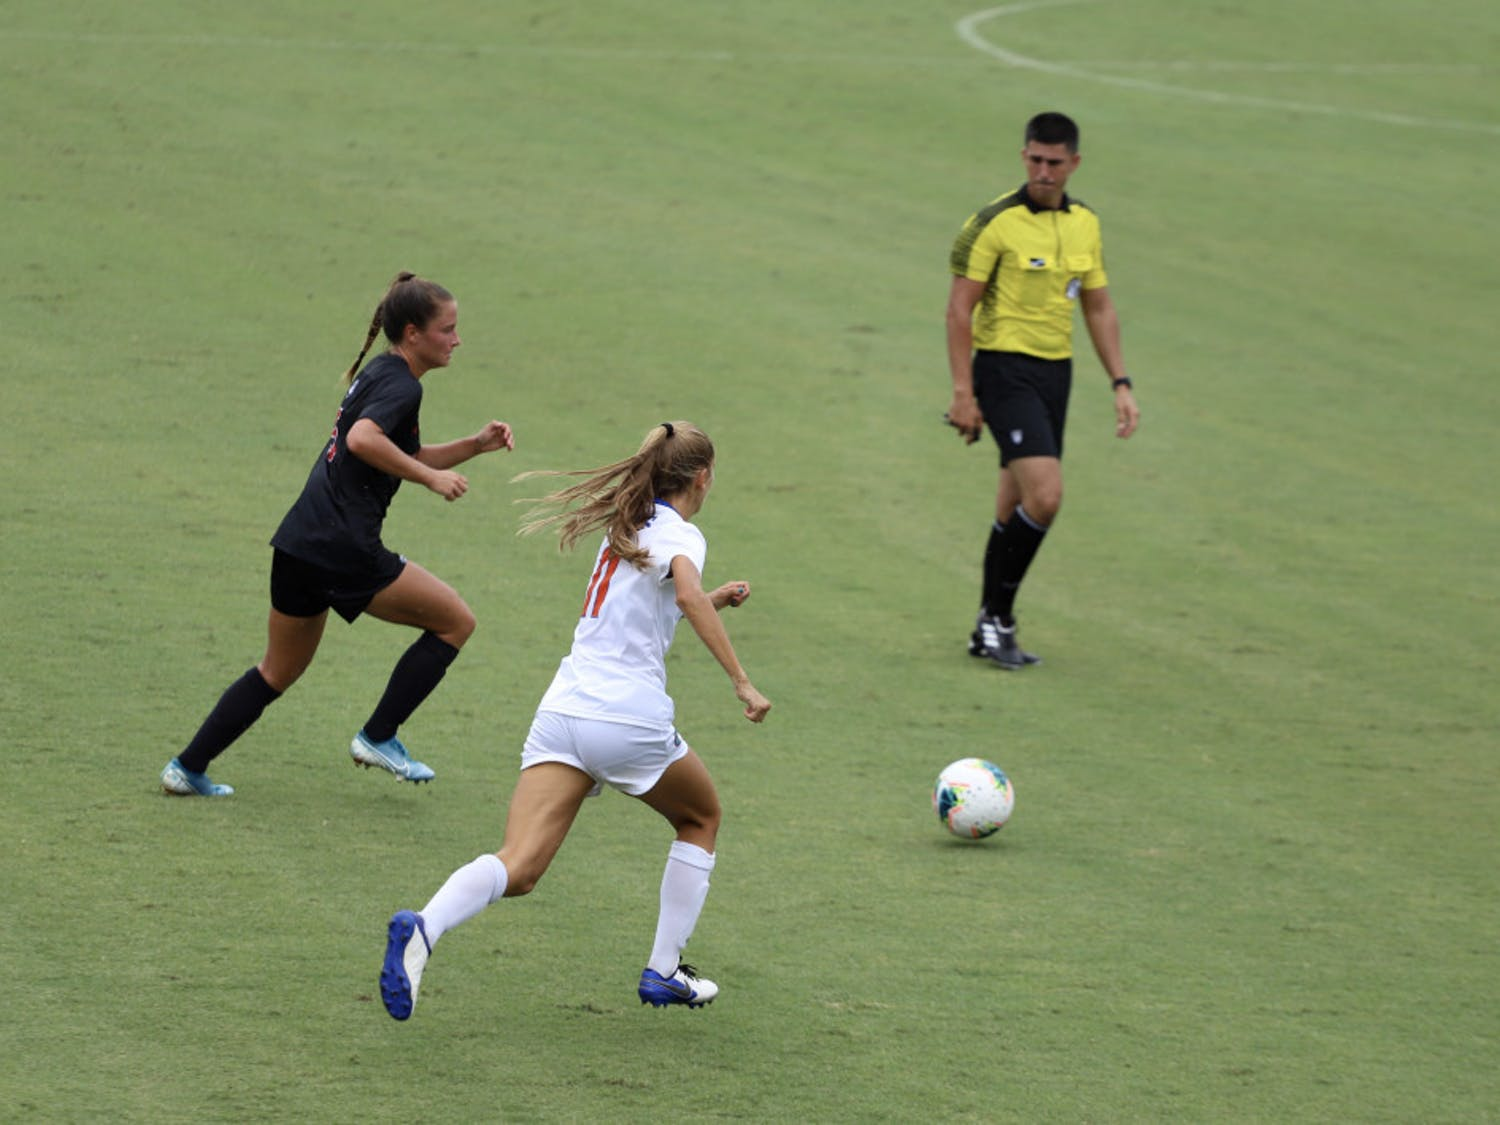 Redshirt freshman midfielder Nicole Vernis fights for a ball at Florida's home opener against Georgia this season. Vernis scored her first collegiate goal versus South Carolina Sunday afternoon.